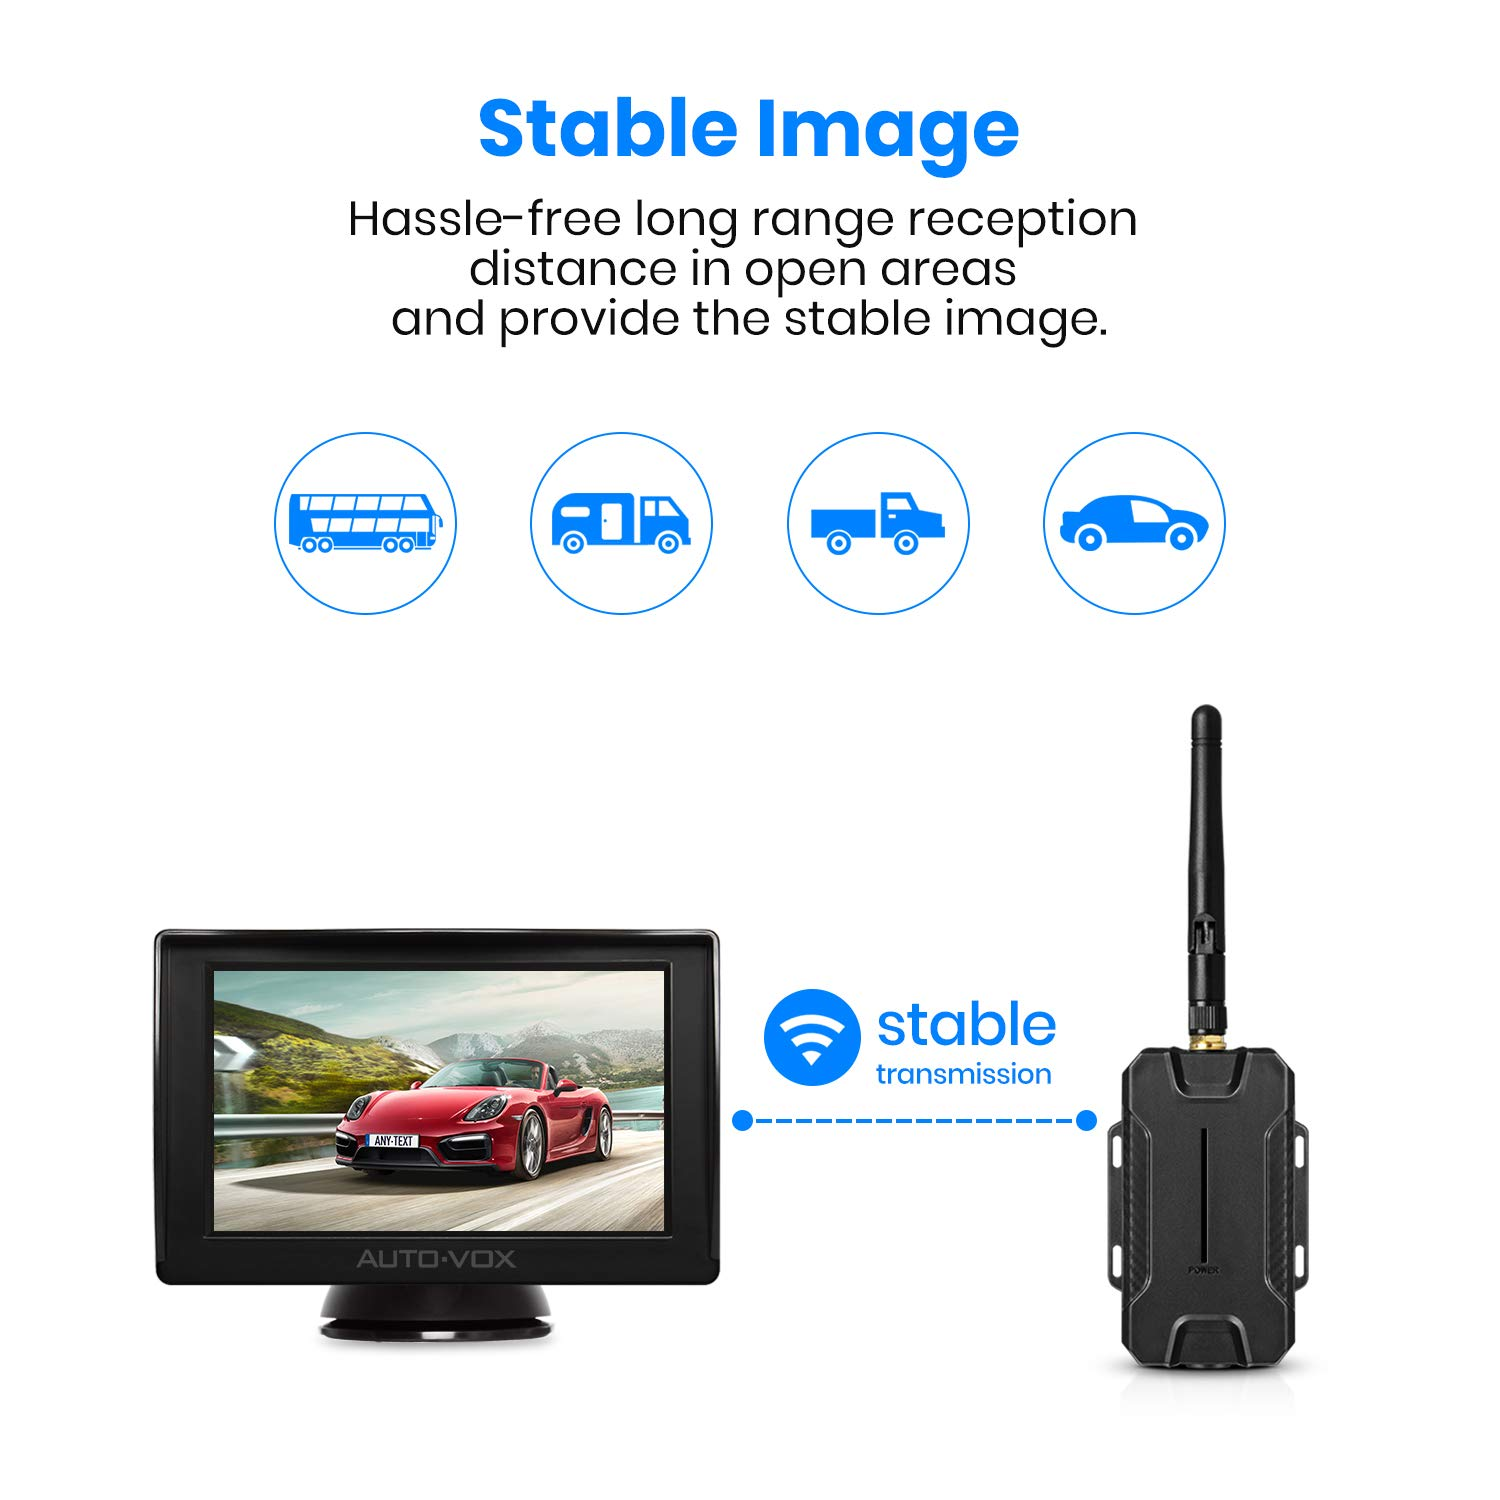 galleon auto vox m1w wireless backup camera kit ip 68. Black Bedroom Furniture Sets. Home Design Ideas